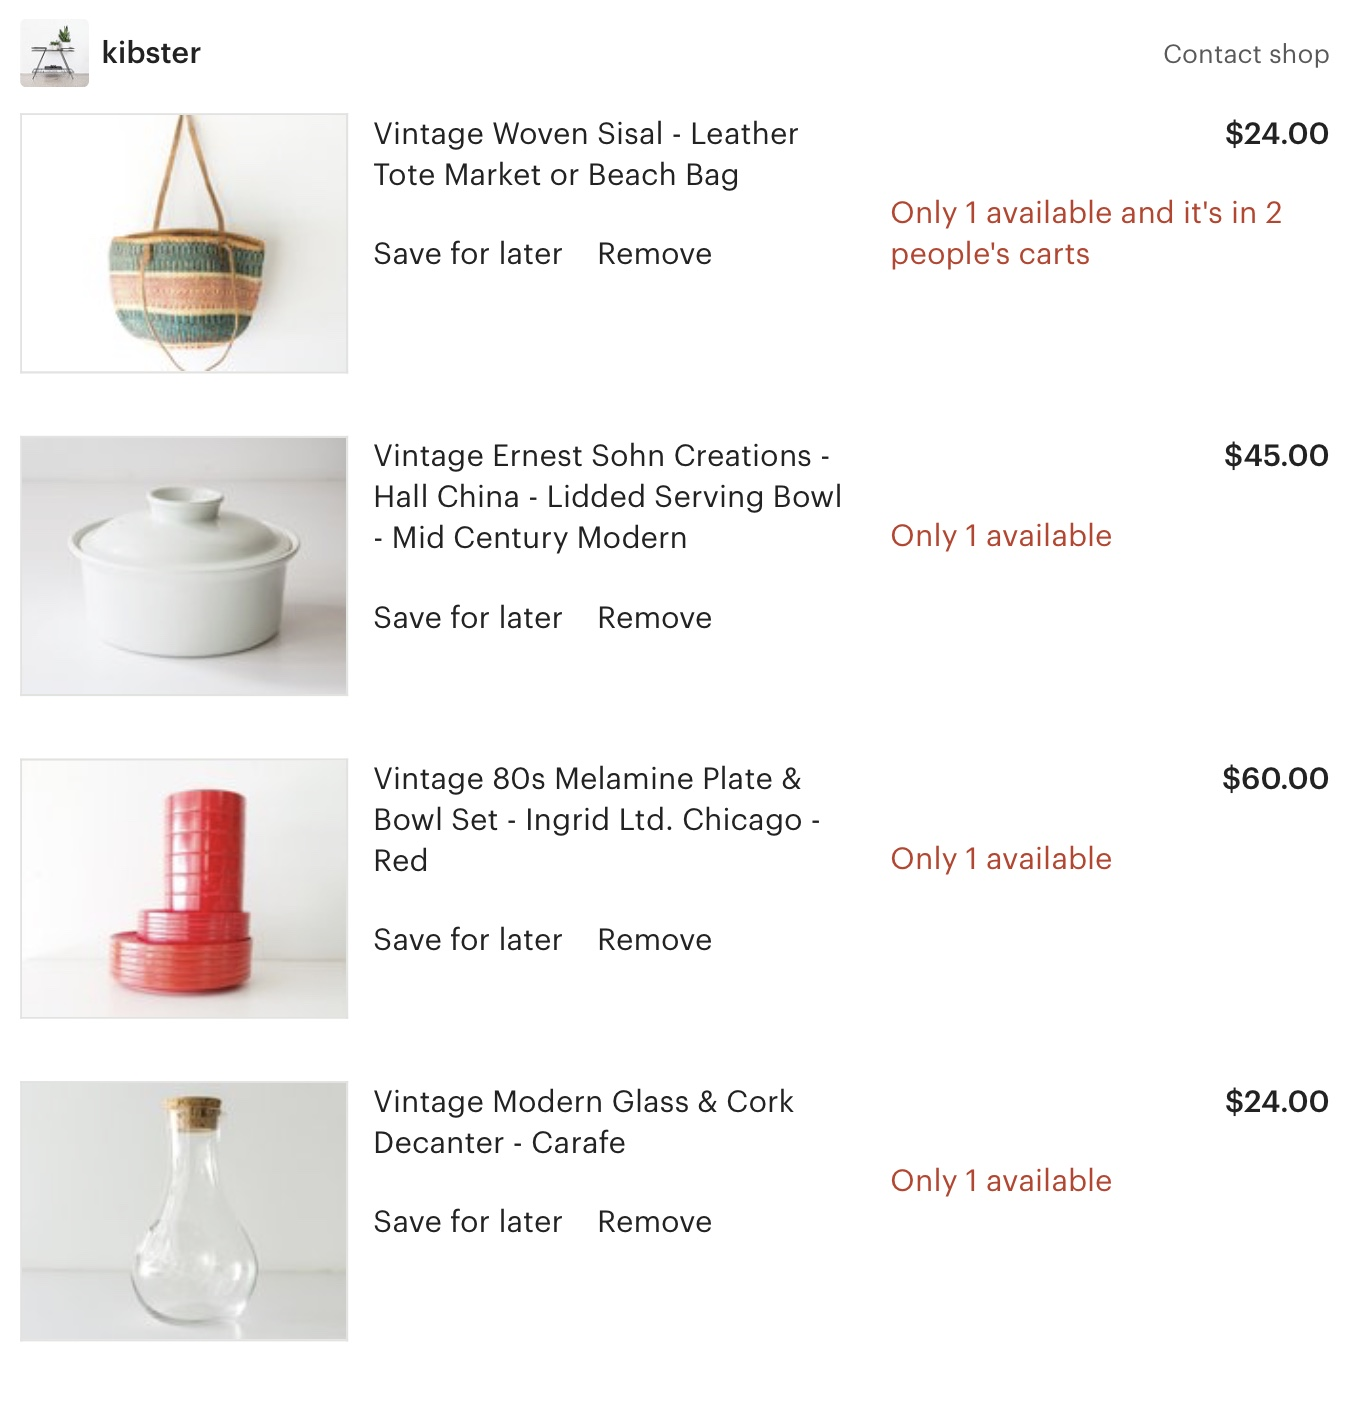 My current cart.  (I'll let you in on my new earth-saving, cool-hunting, penny-pinching tactic:  before I buy something on Amazon, I check to see if I can get it here or one of my other fave Etsy shops.  Recent reasons for a visit:  broken decanter, not enough kid-friendly dishware, batch of cookies made and Saran Wrap over plate felt undignified.  The purse is NOT a necessity but, I mean, it's too good to pass up).